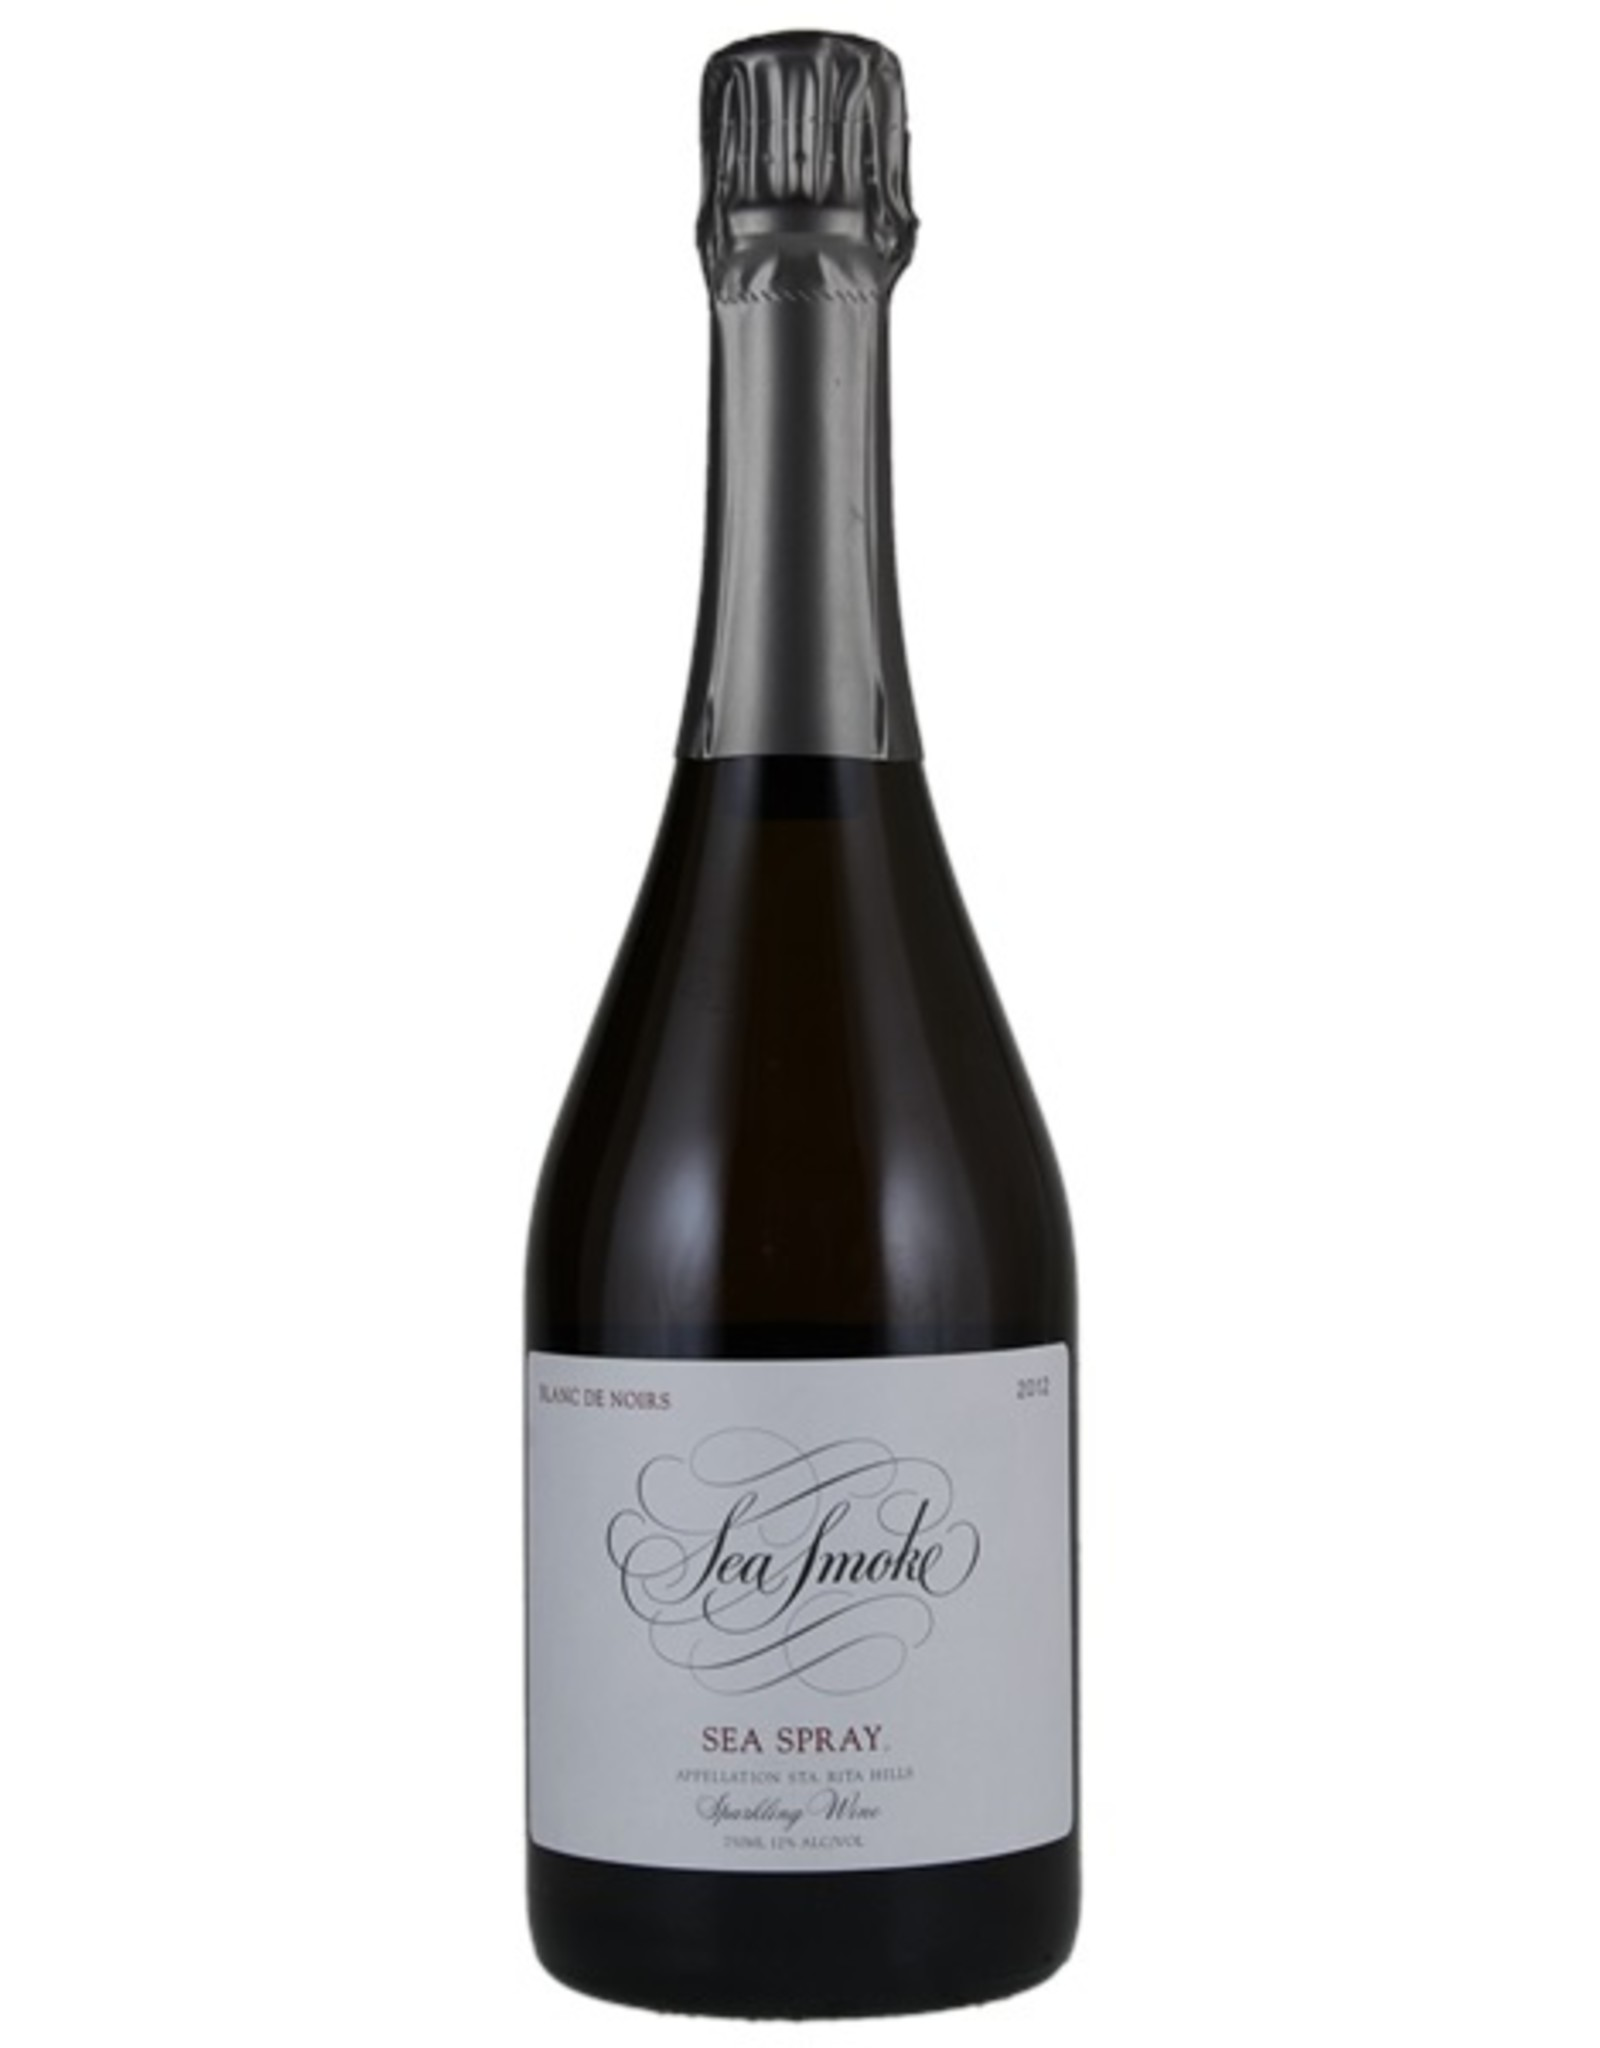 Sparkling Wine 2012, Sea Smoke Sea Spray Blanc De Noirs, Sparkling Pinot Noir,  Sta. Rita Hills, Central Coast, California, 12% Alc, CT90, WE92, TW95